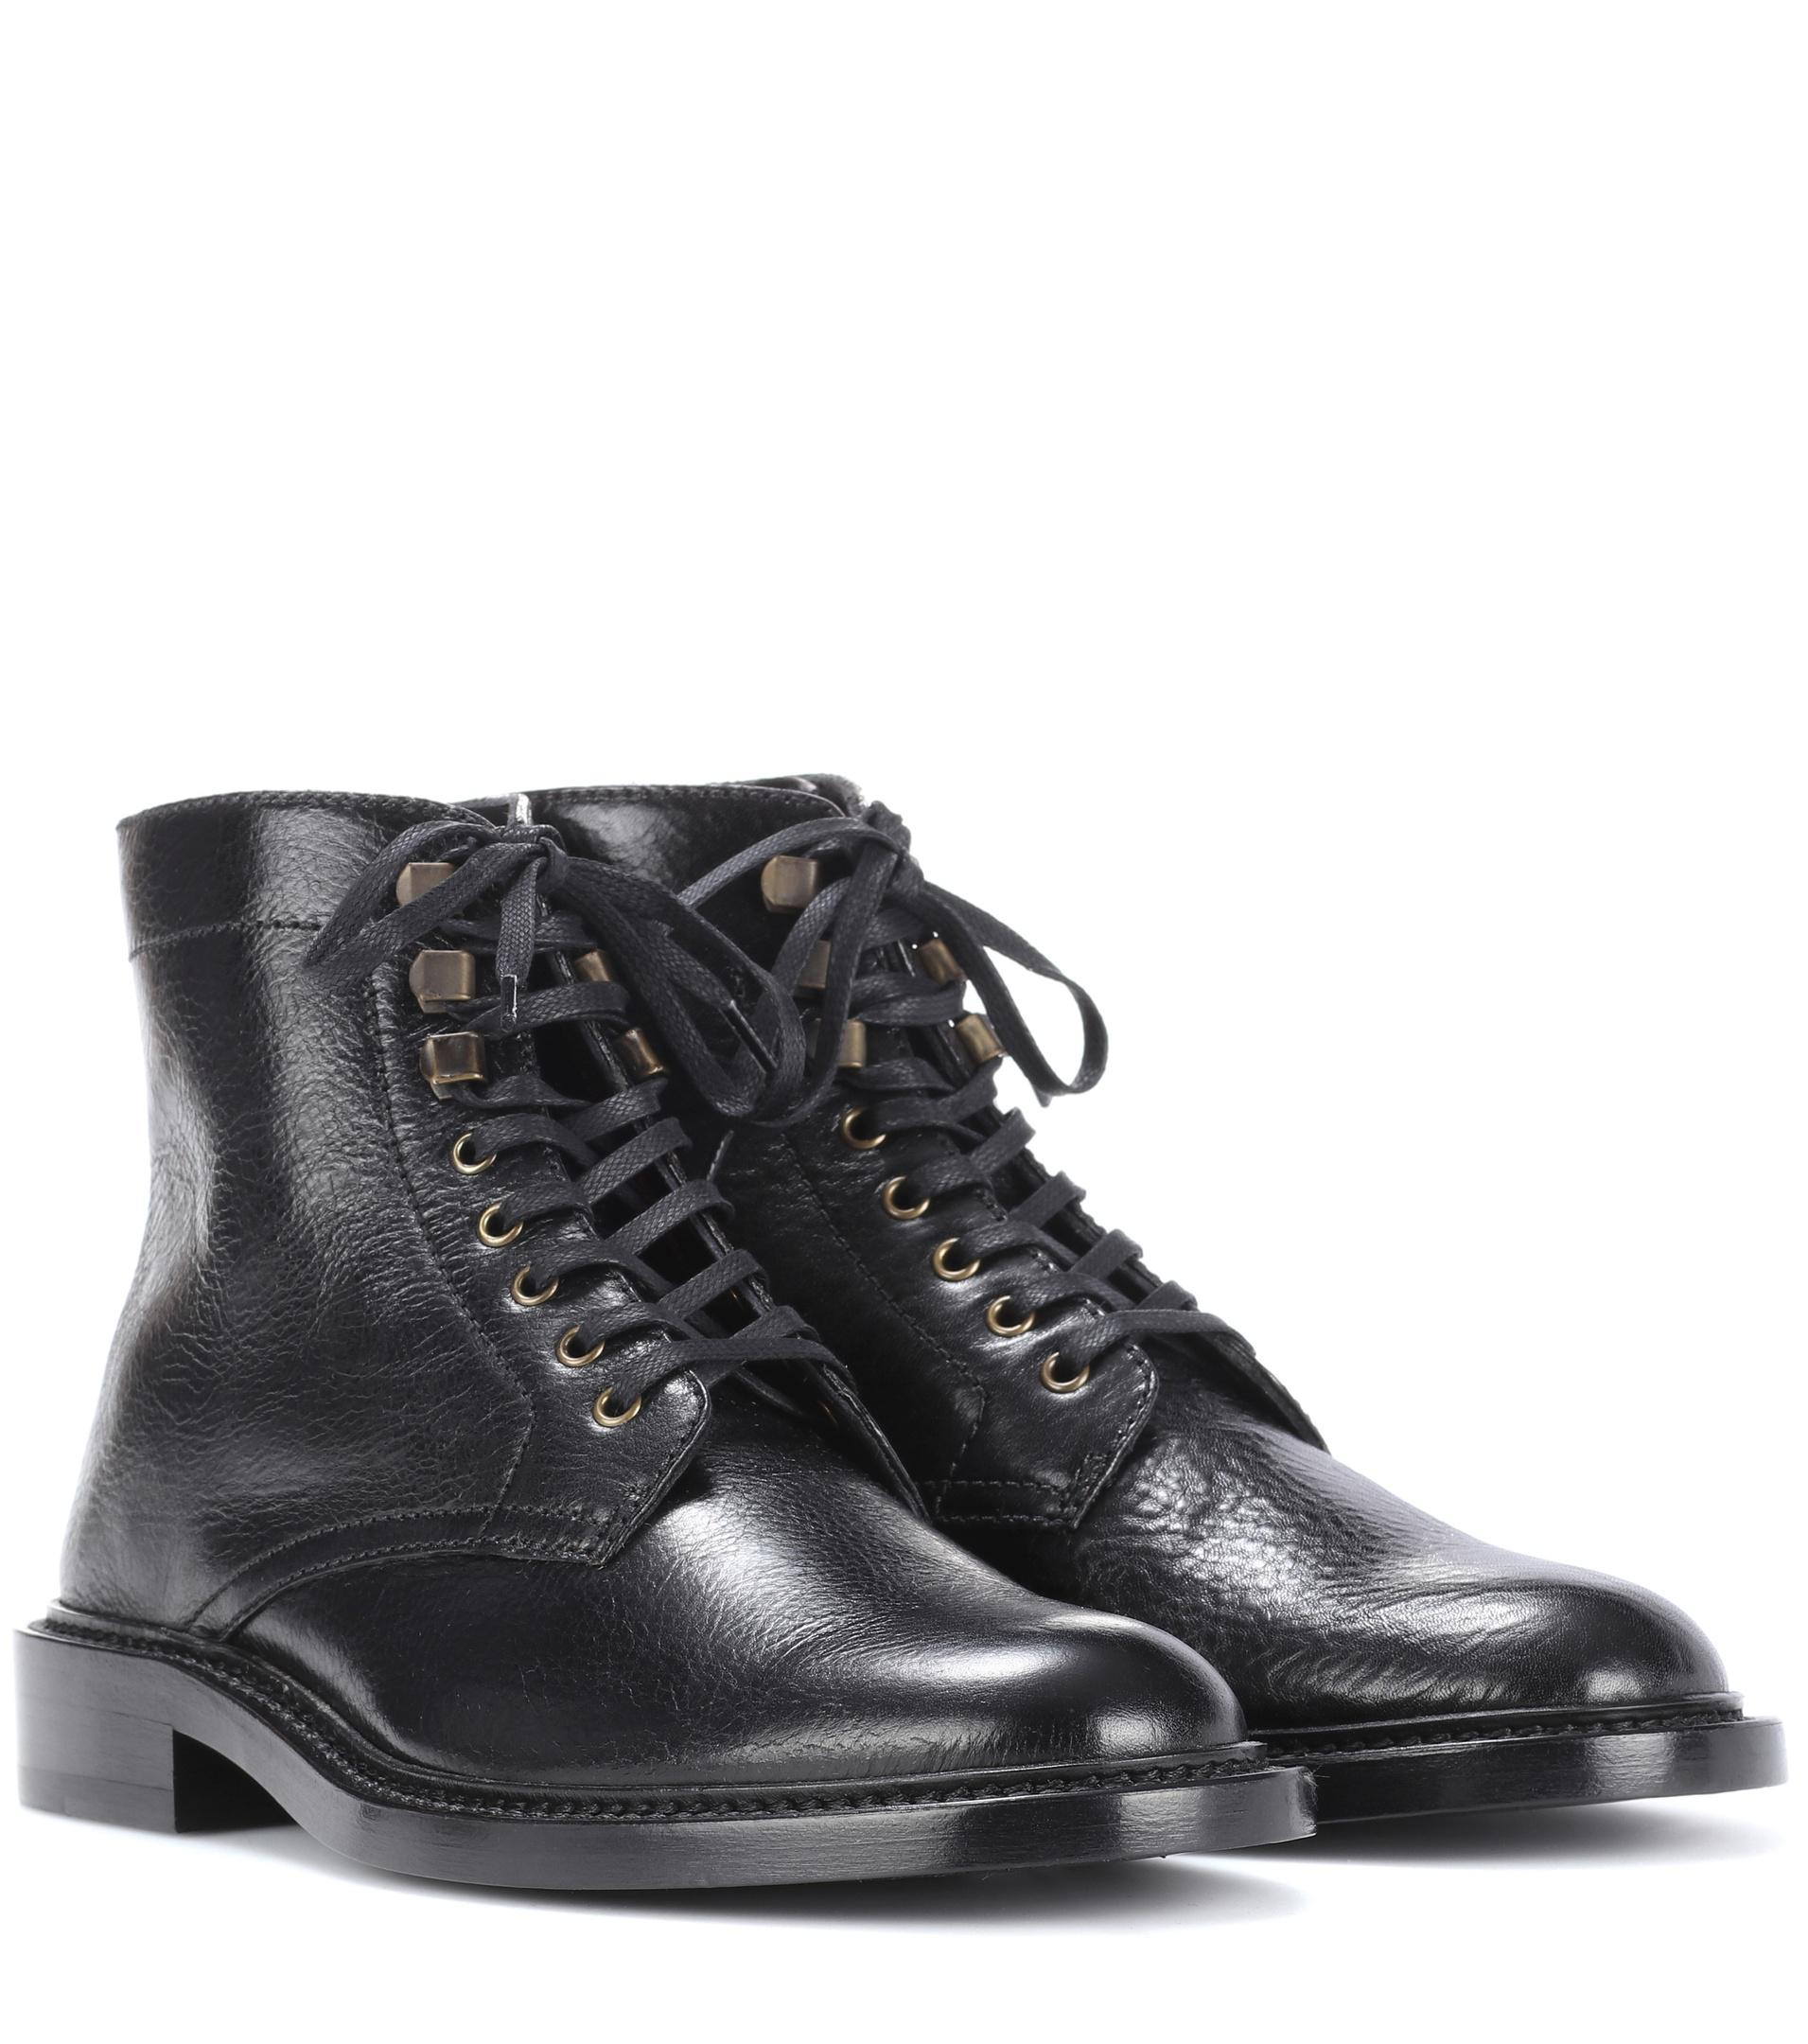 prices Saint Laurent Army 25 leather ankle boots outlet geniue stockist buy cheap pay with paypal clearance professional order cheap online i3CP8p